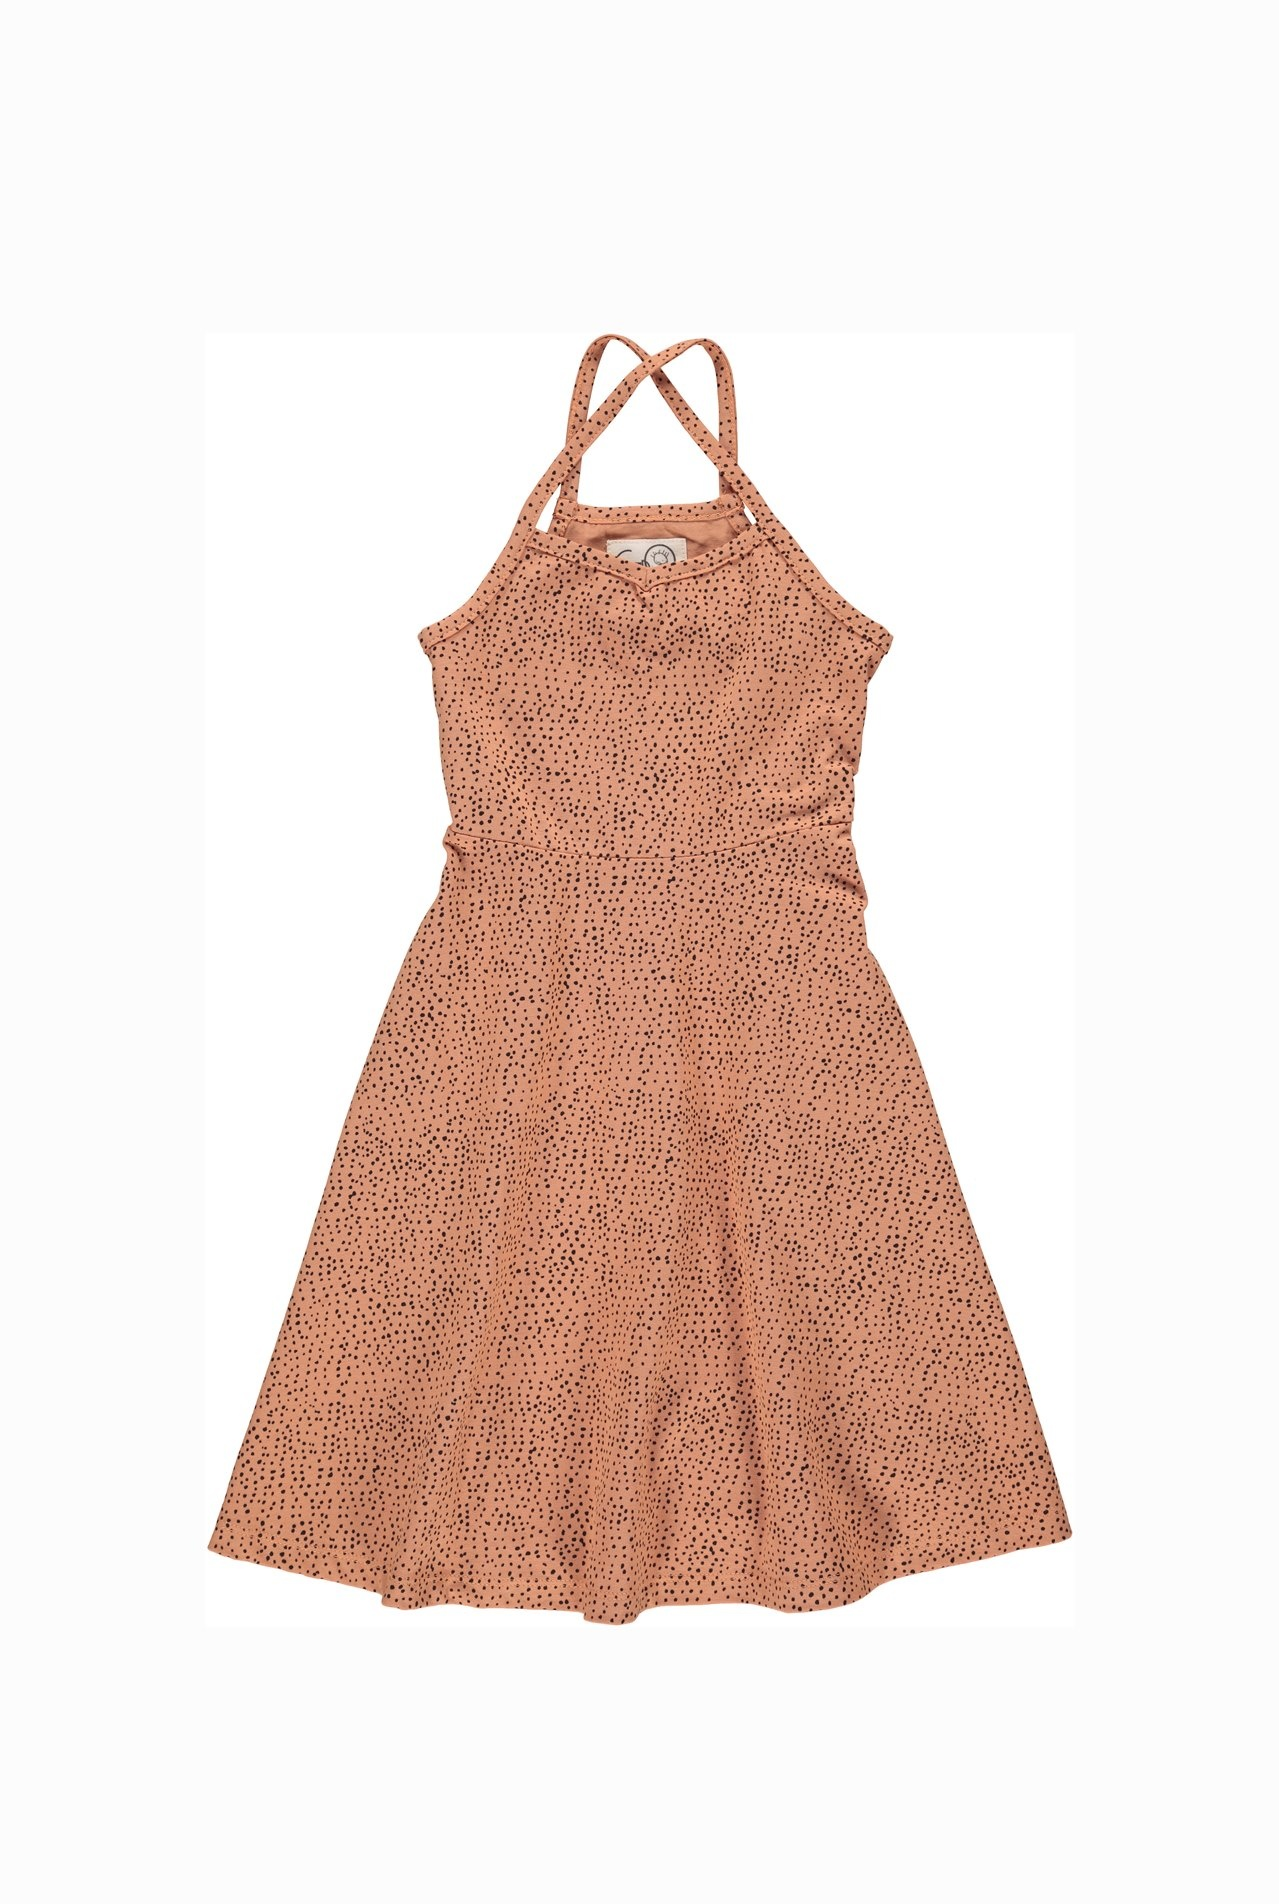 Summer dress aesthetic dots - coral